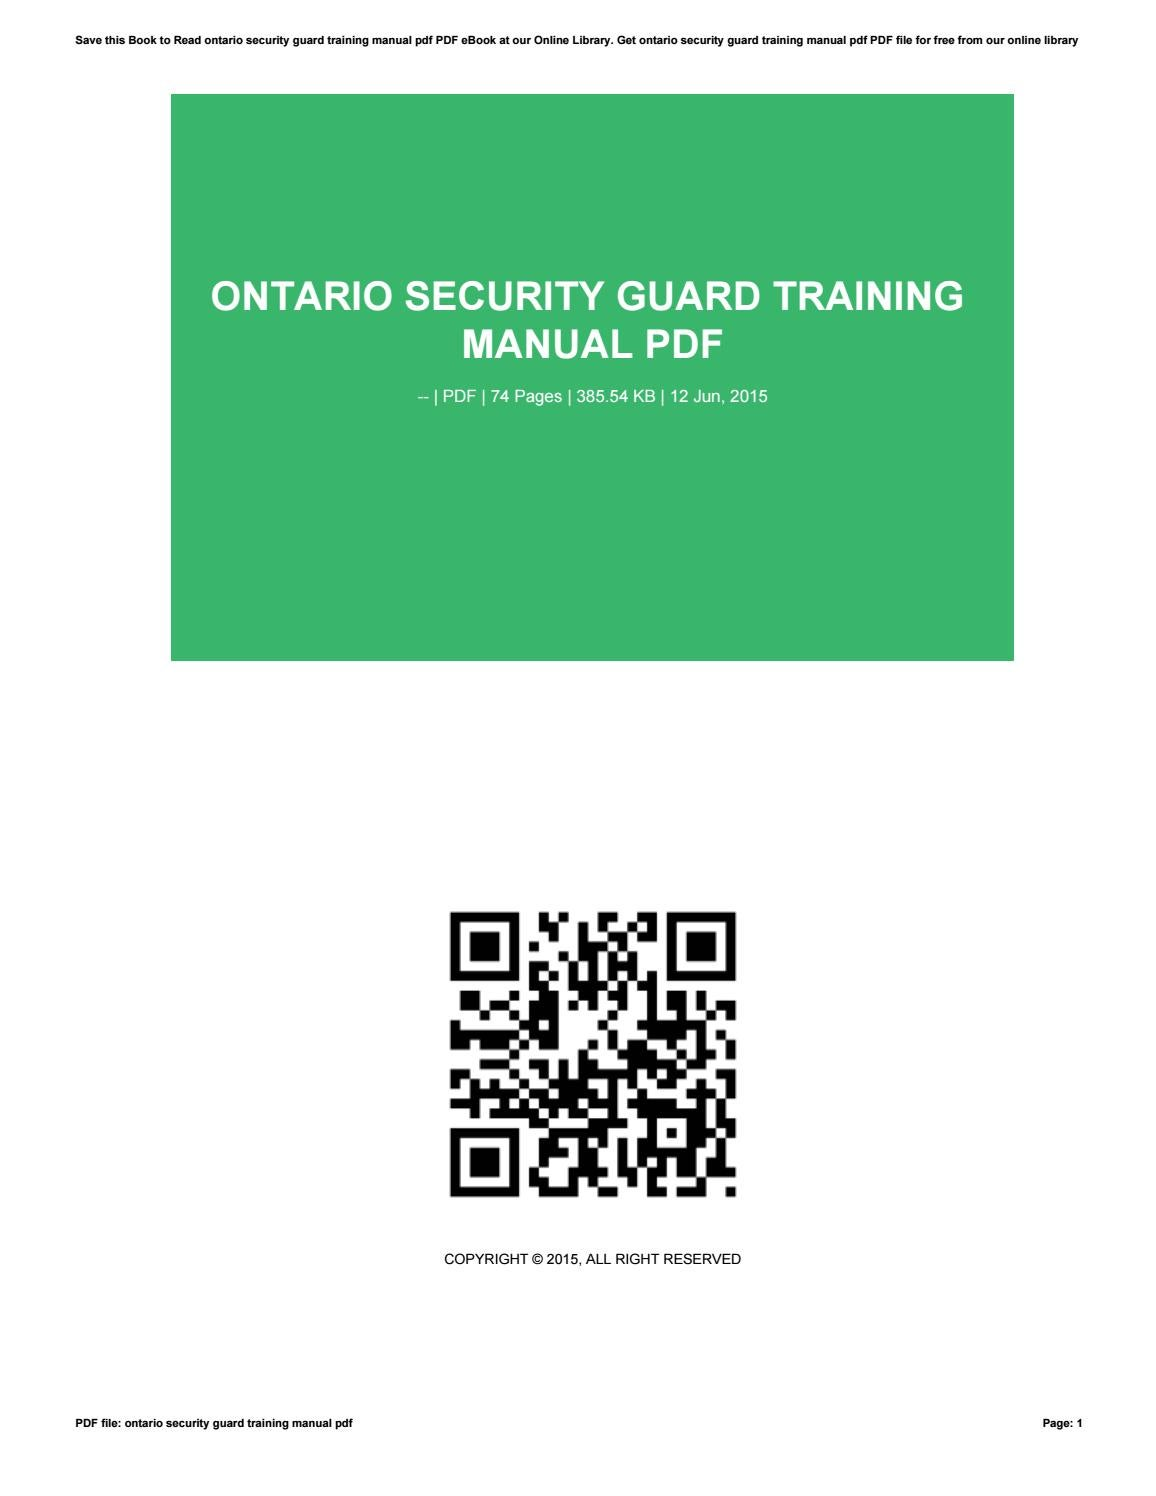 Psis security guard study guide use of force theory | ministry.